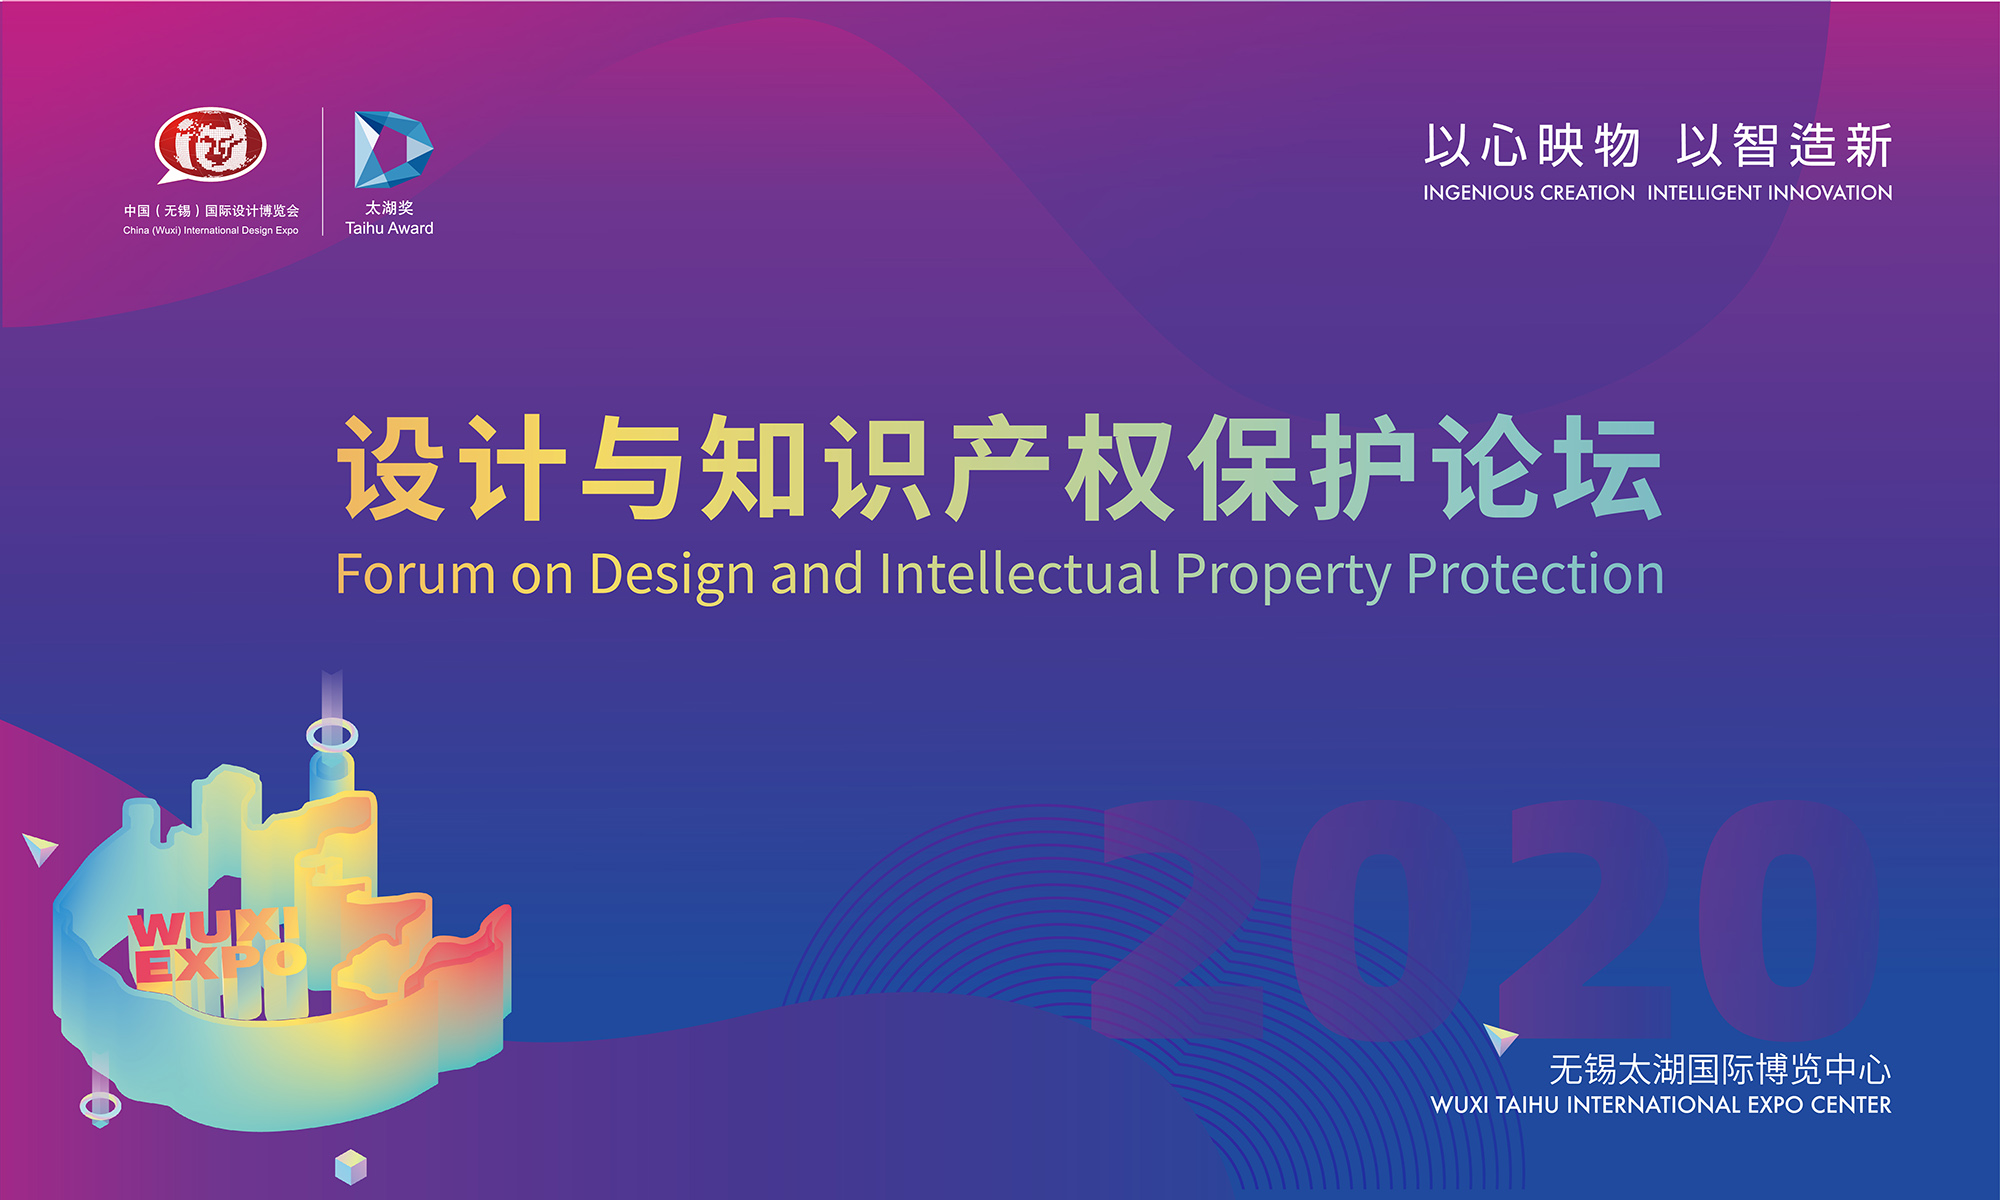 Forum Design and Intellectual Property Protection